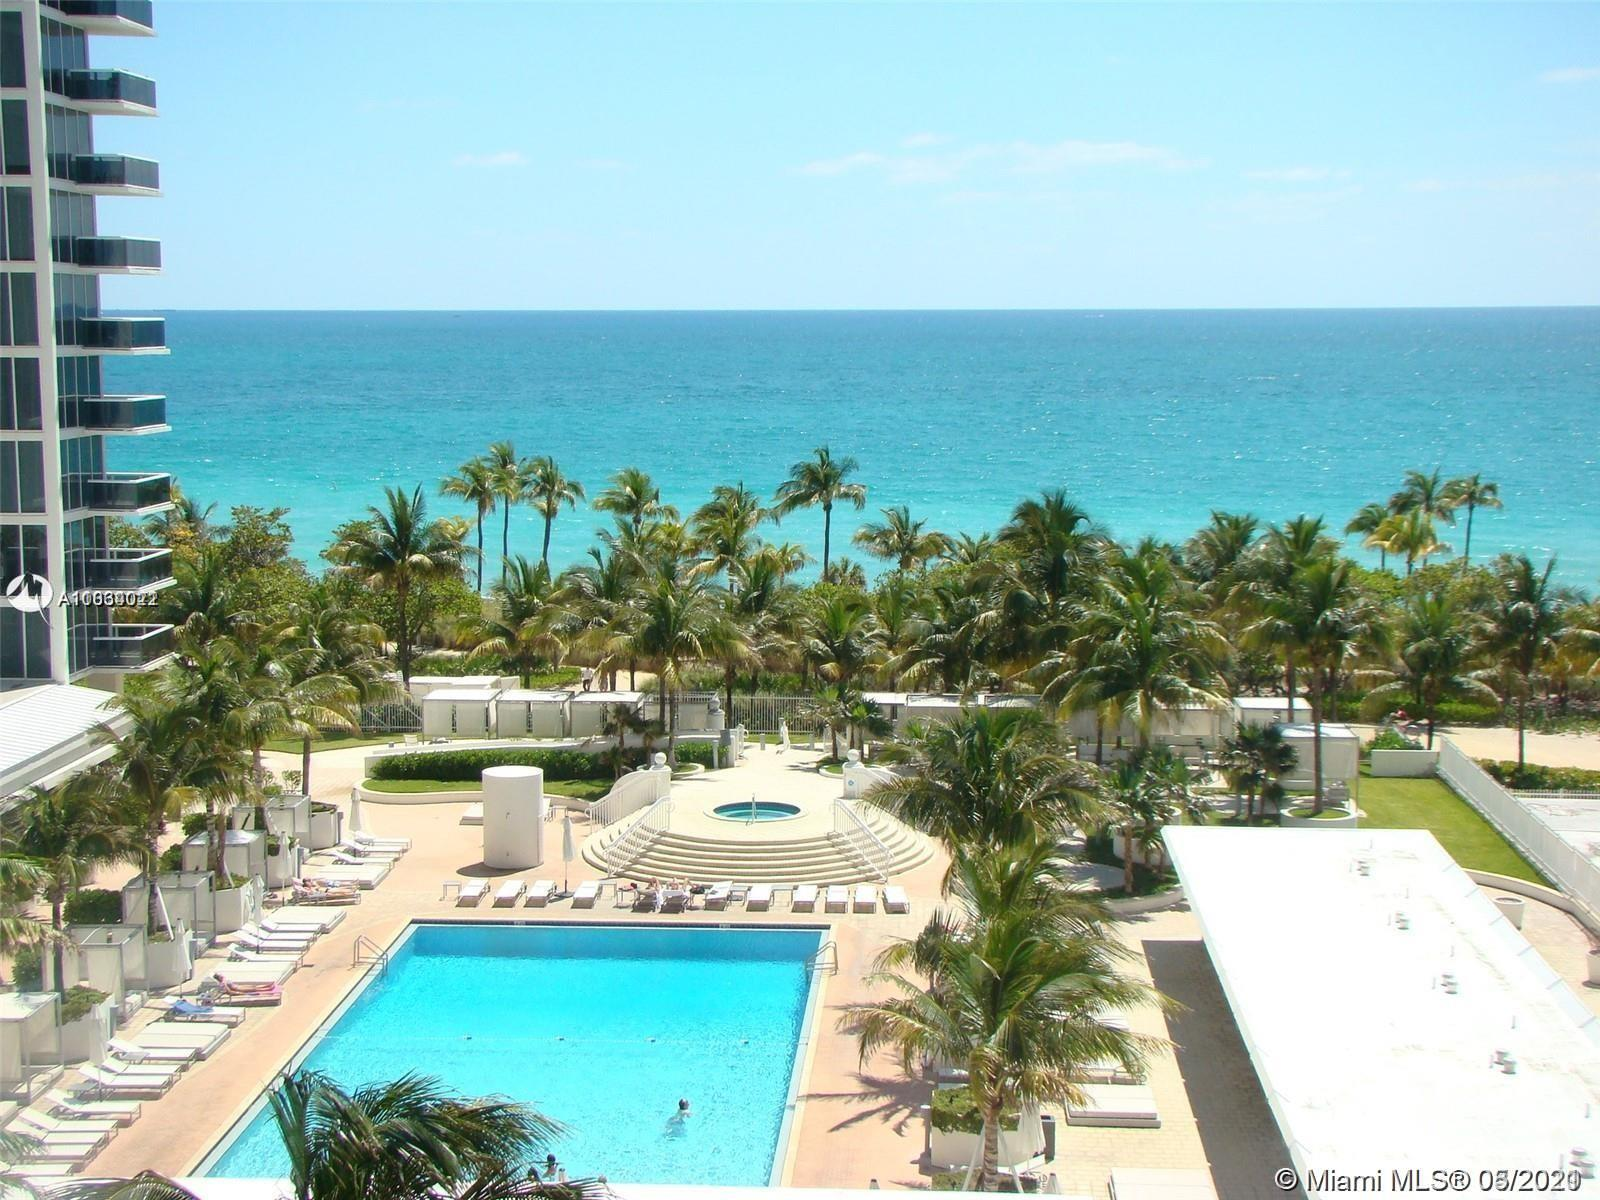 Beautiful 2 bedroom 2 bathroom, direct ocean view in the heart of bal harbour. Unit is being remodeled Ready by August 1st 2021.